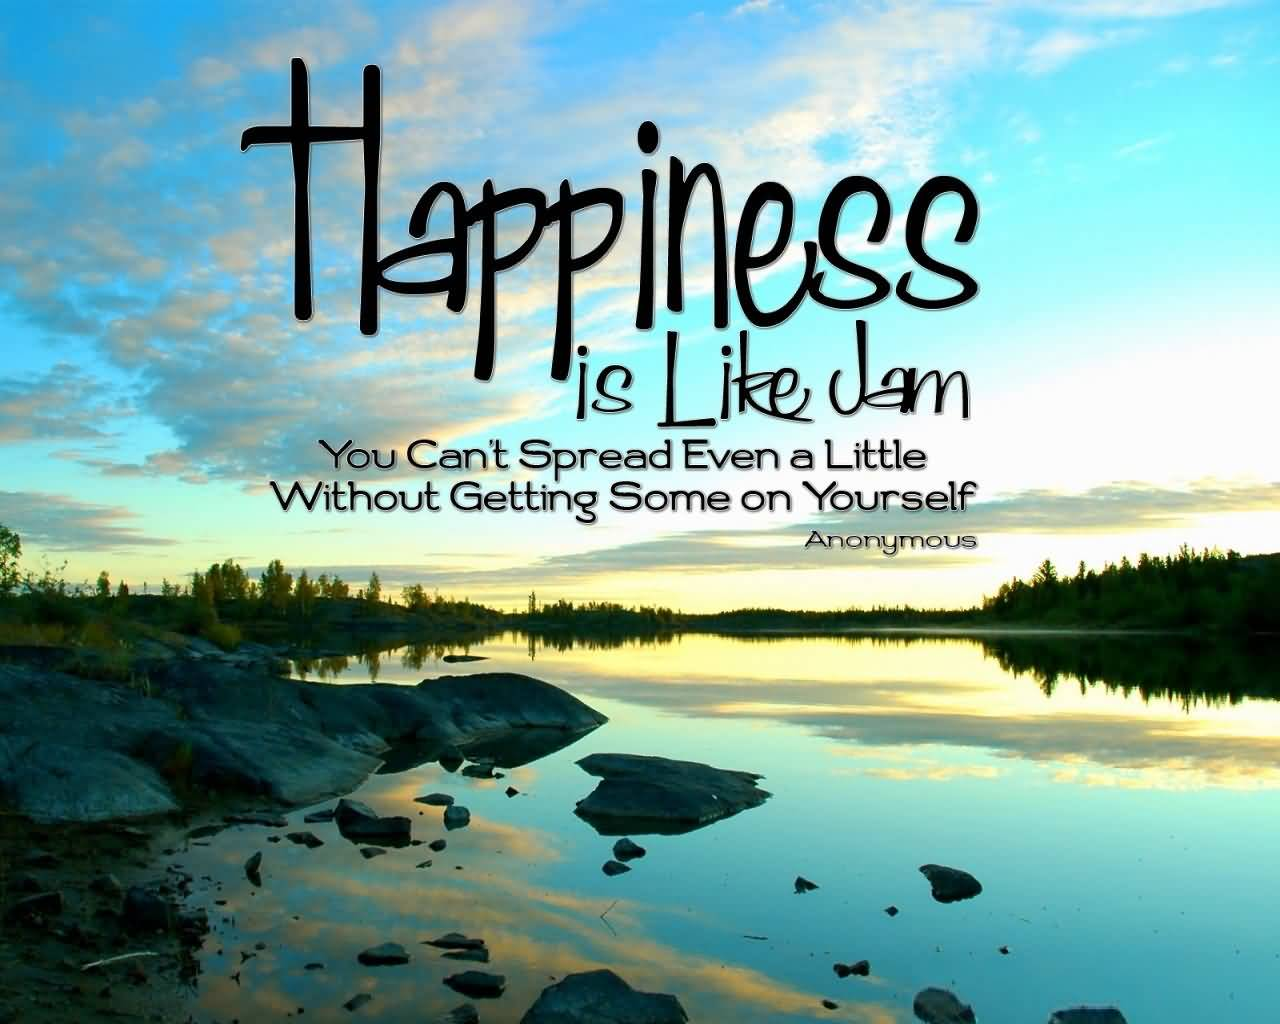 Inspirational Happiness Sayings Happiness is like jam you can't spread even a little without getting some yourself